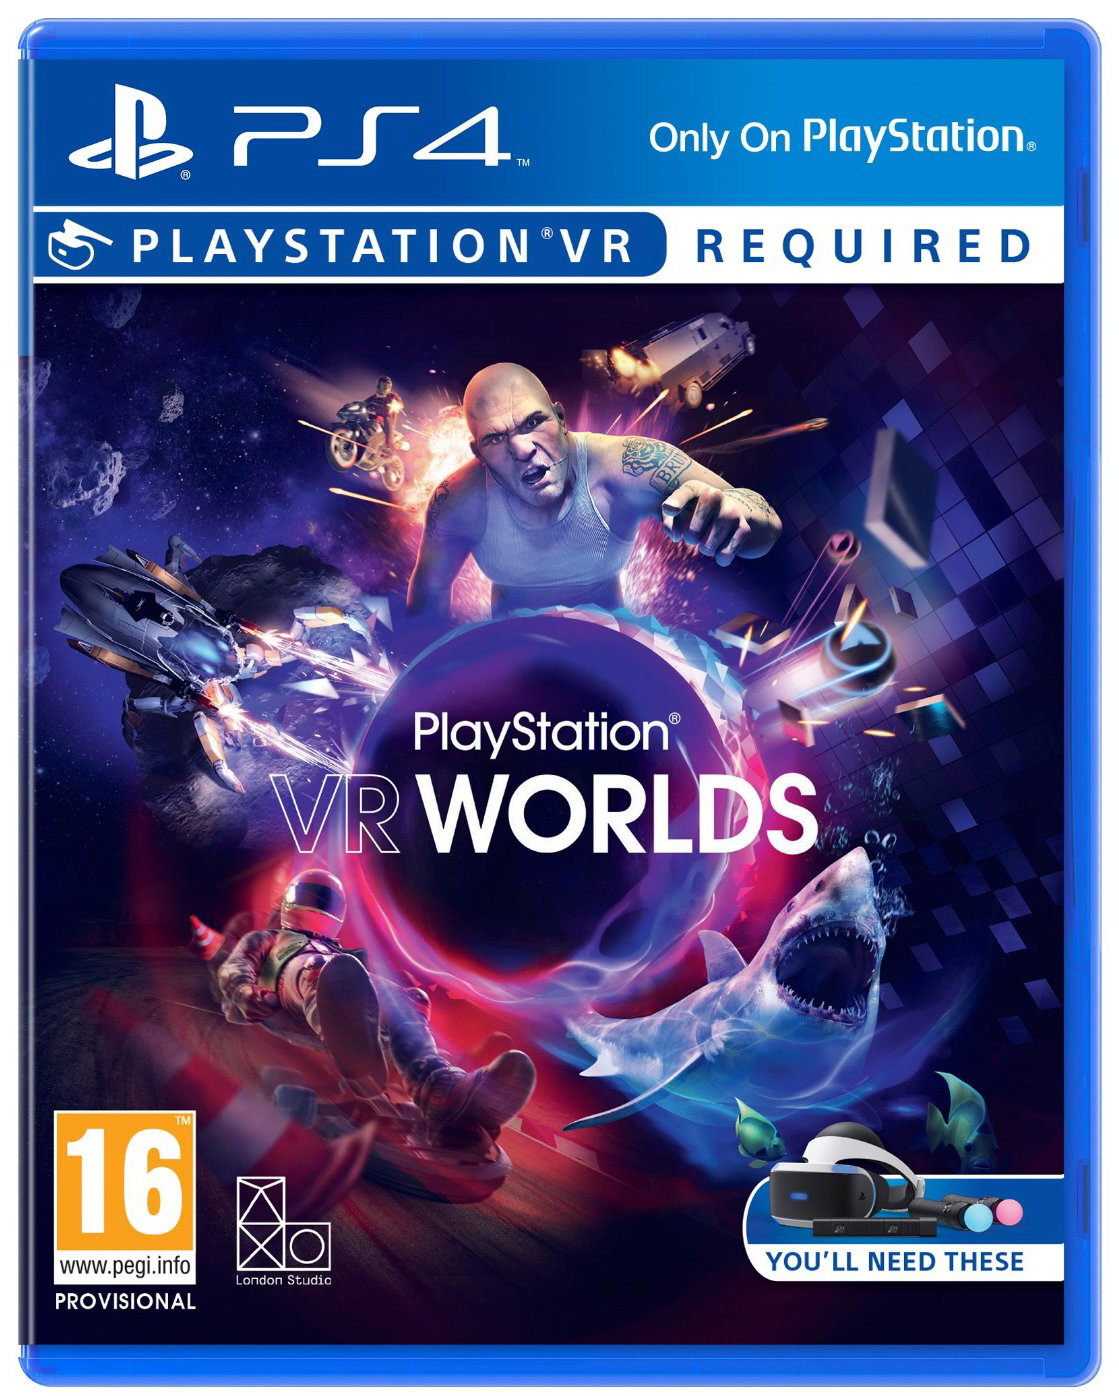 playstation-vr-worlds-box-art-europe.jpg